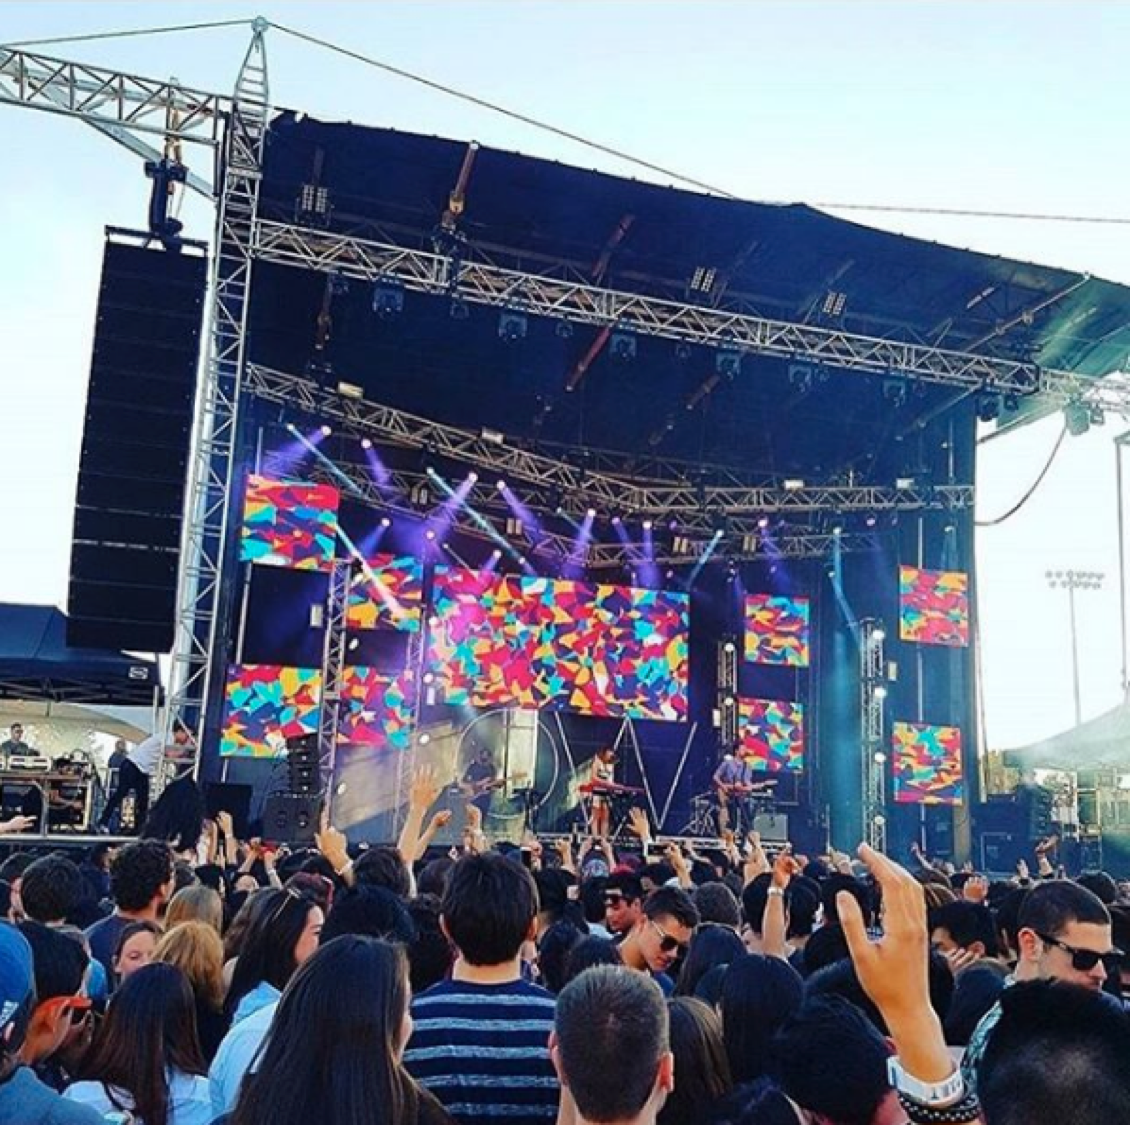 A flashback to the last day of classes at Vancouver's campus. The @ams_ubc threw an amazing Block Party with special guests Oh Wonder, Vince Staples, Lido, and more. : @macguru96